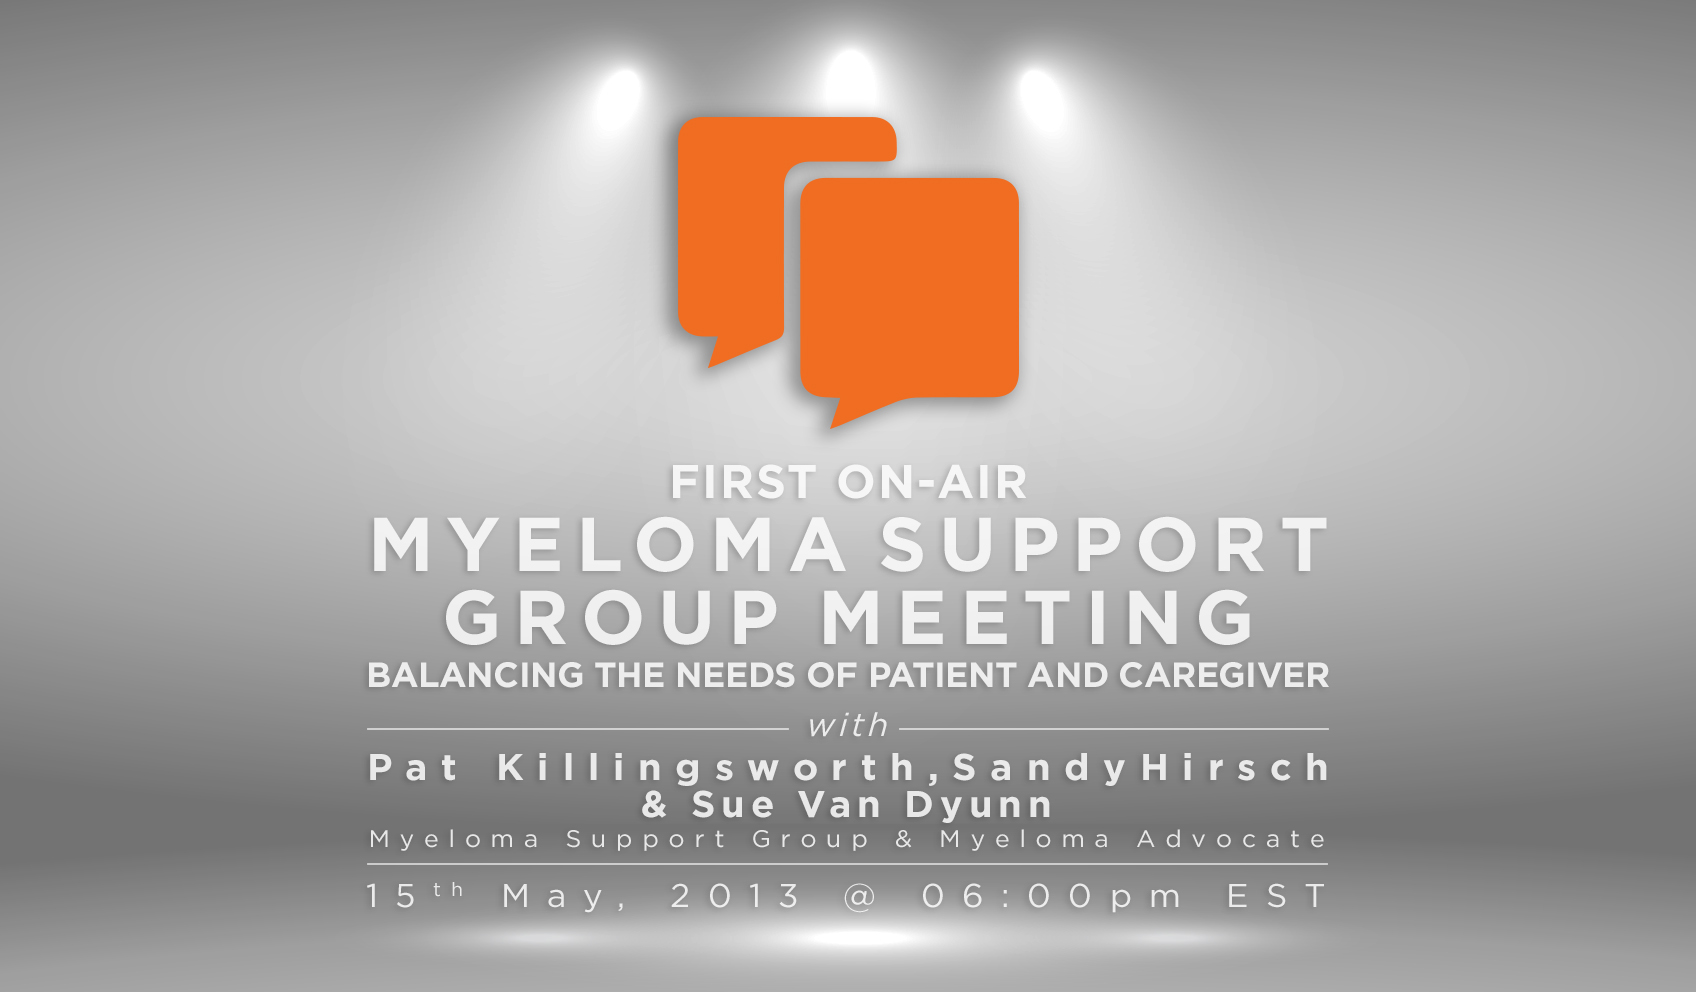 First On-Air Myeloma Support Group Meeting: Balancing The Needs Of Patient and Caregiver.